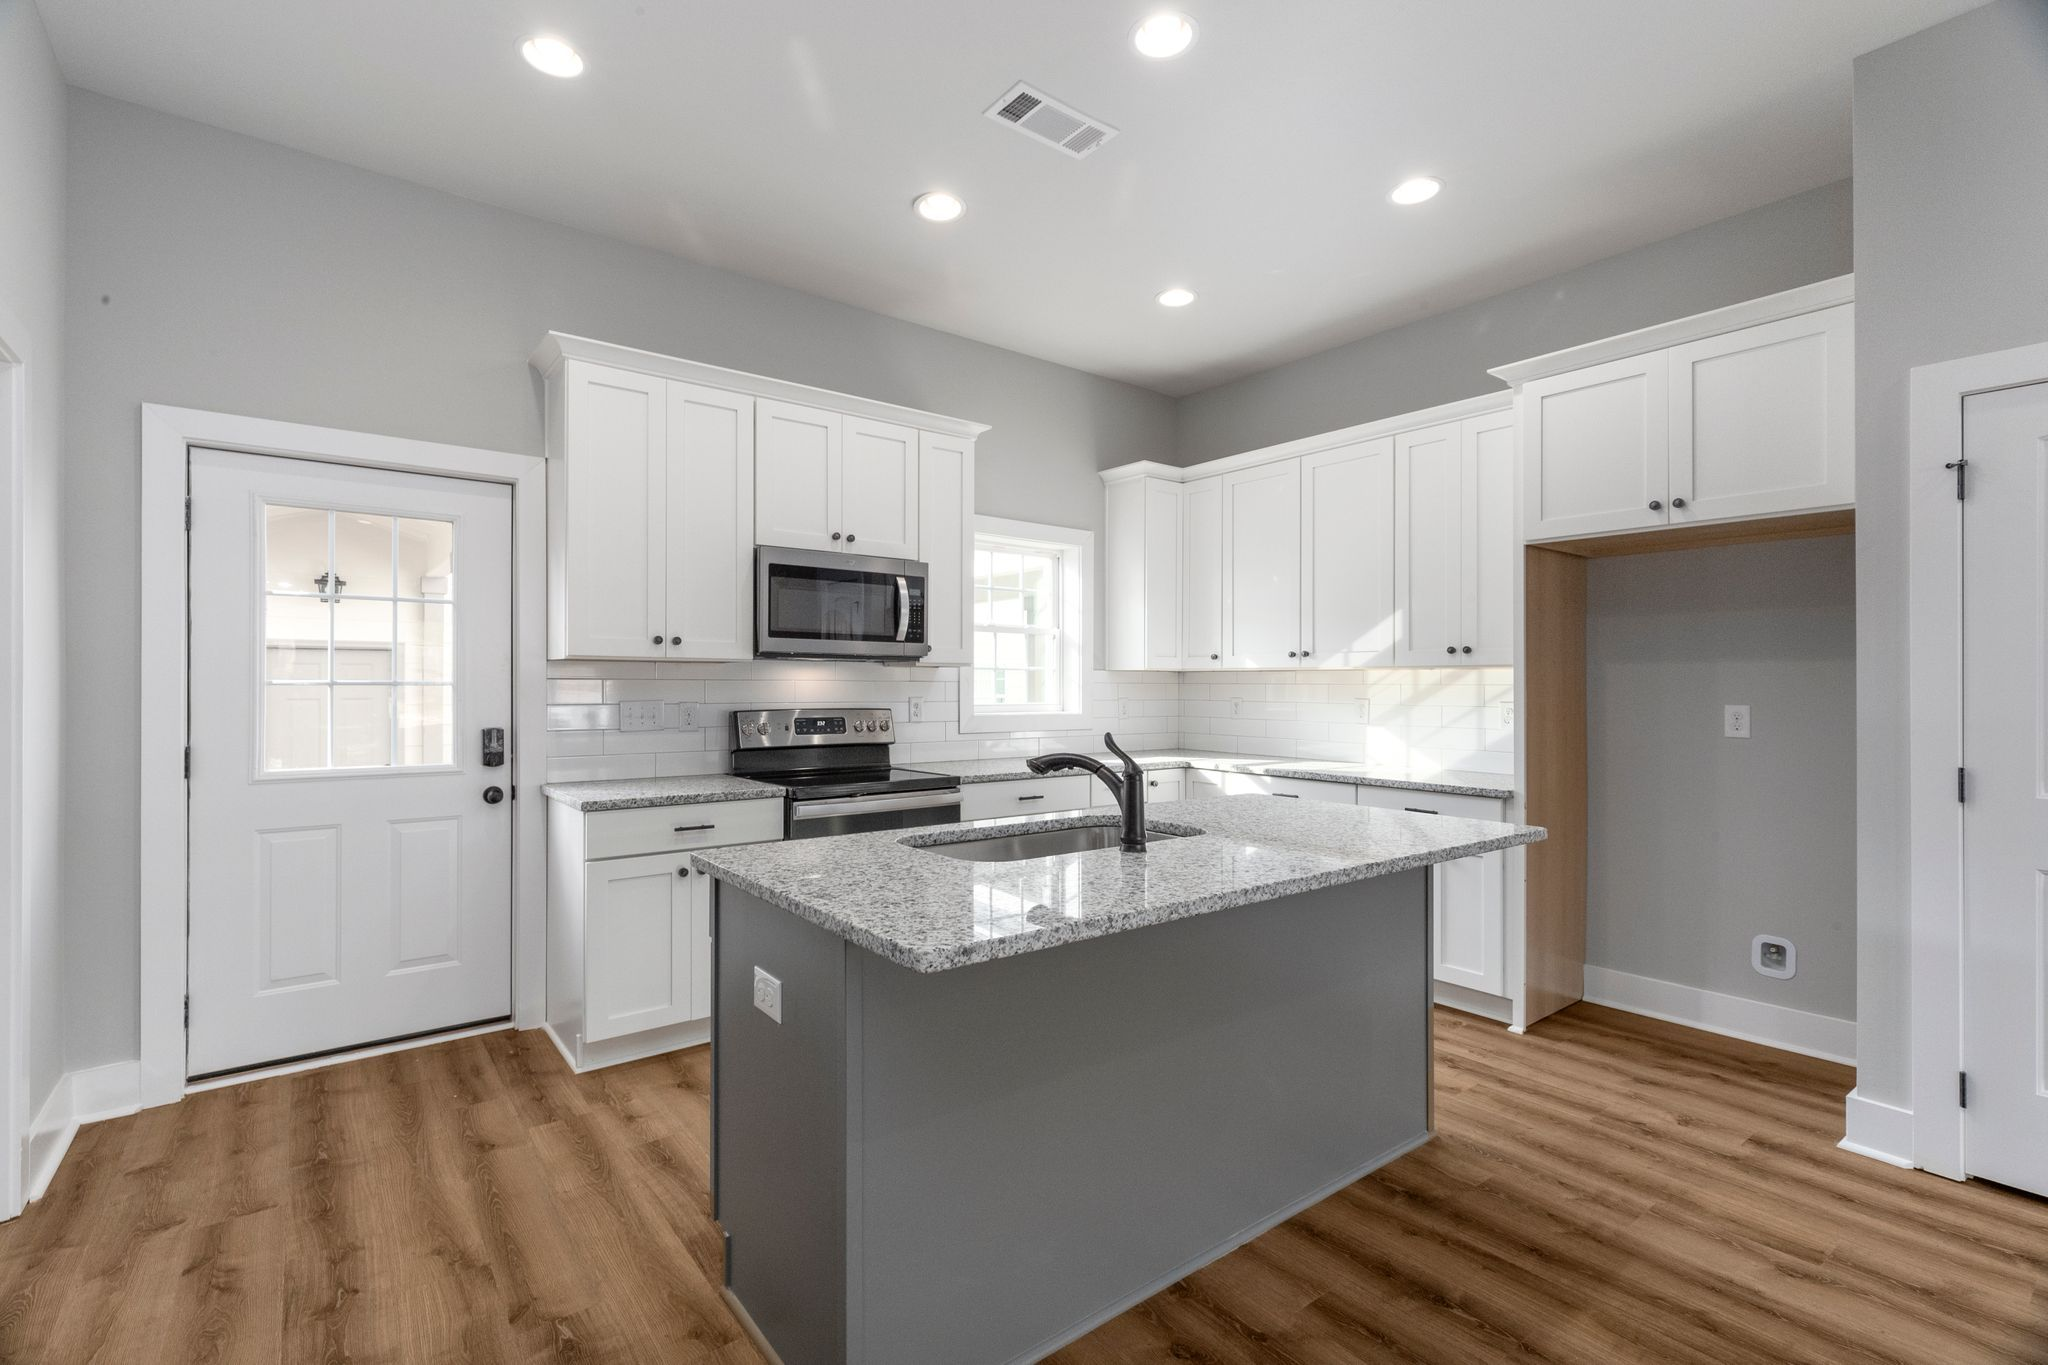 Kitchen featured in the Interior Unit By Holland Homes in Auburn-Opelika, AL